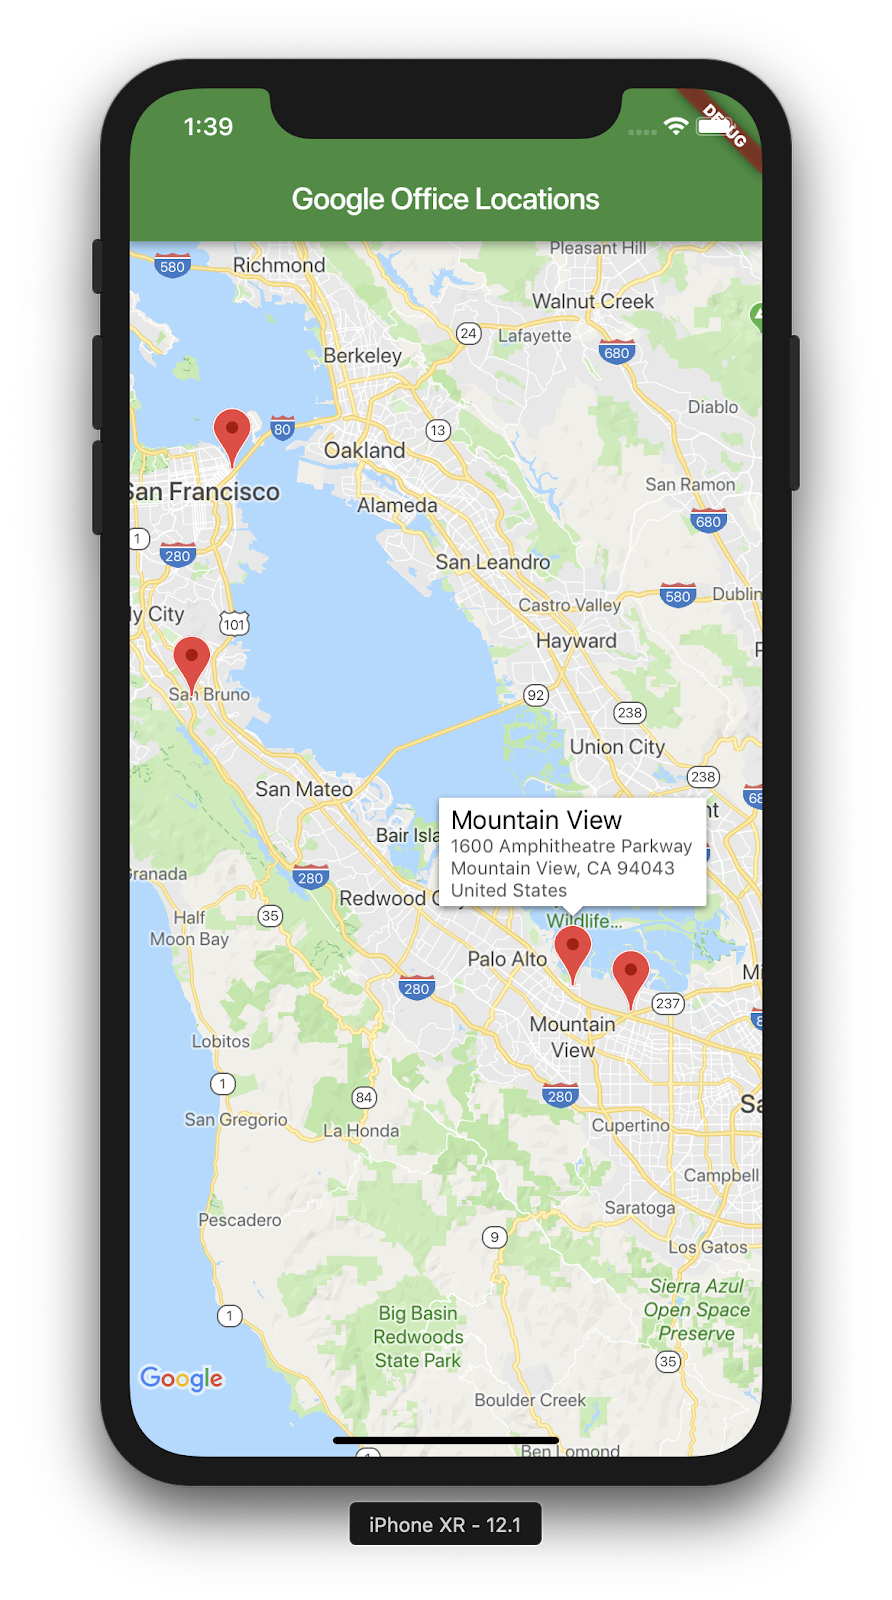 Adding Google Maps to a Flutter App